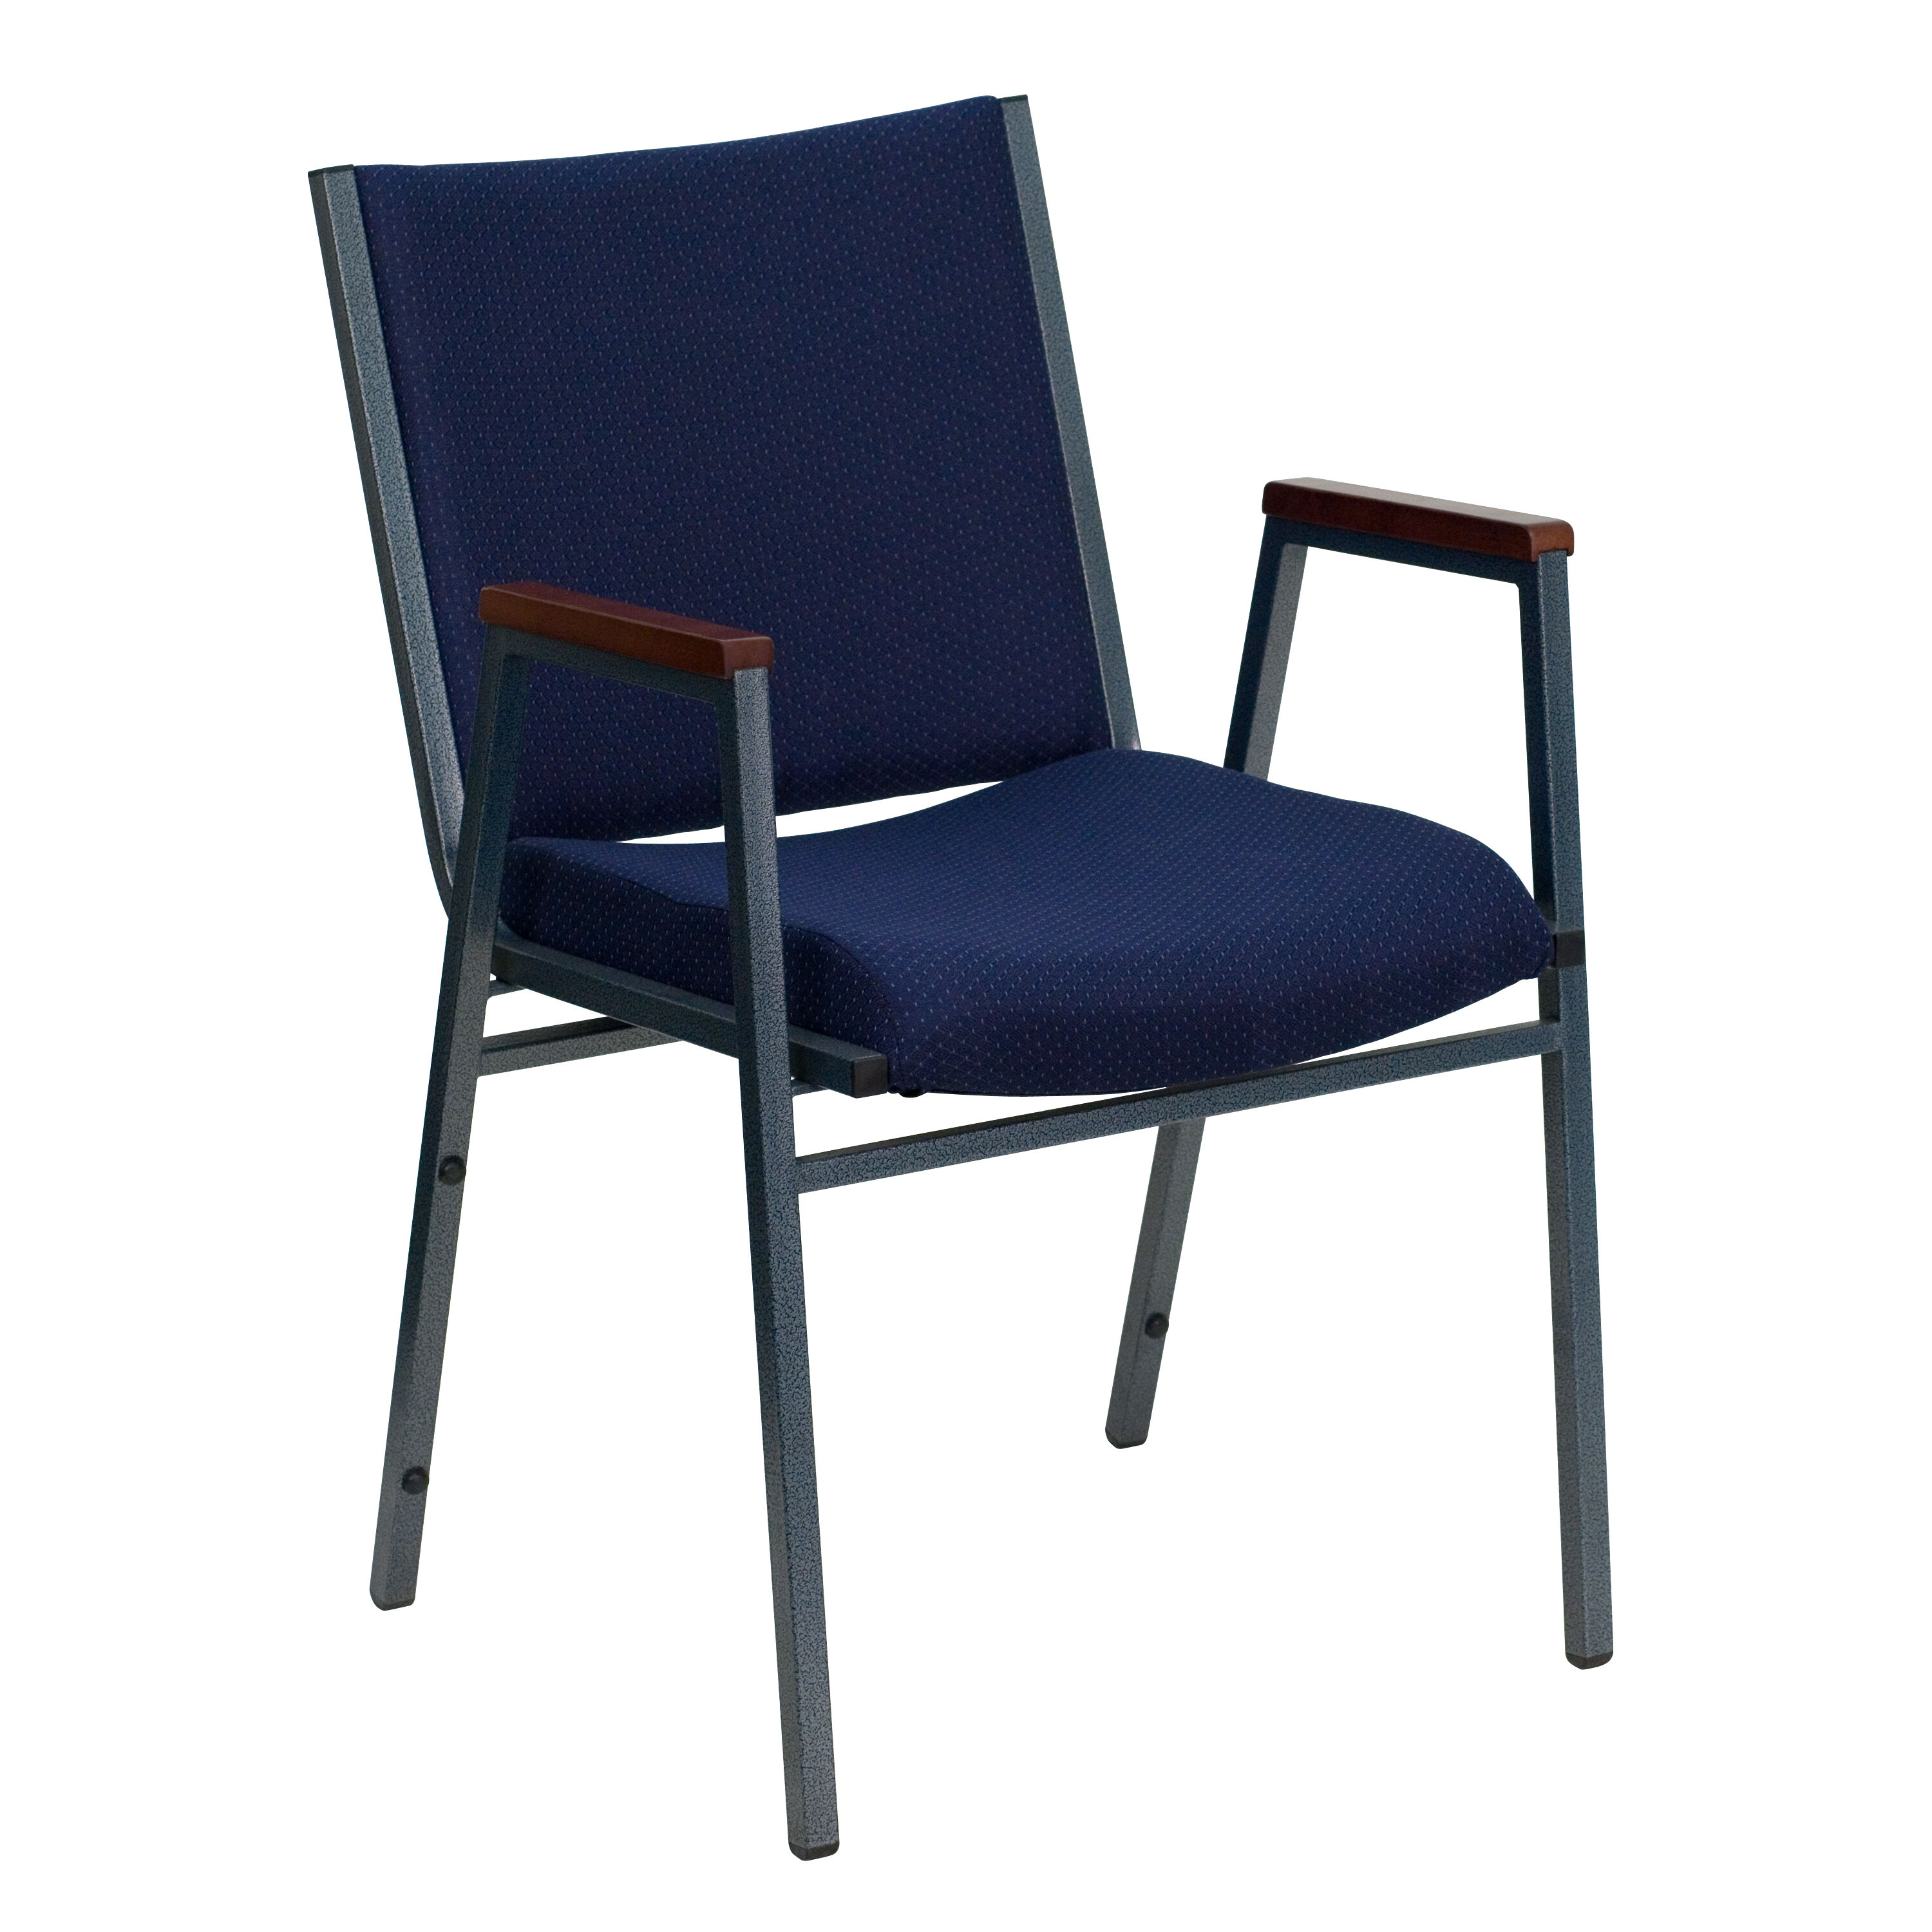 HERCULES Series Heavy Duty Navy Blue Dot Fabric Stack Chair with Arms  sc 1 st  Bizchair.com & Church Chairs With Arms | BizChair.com